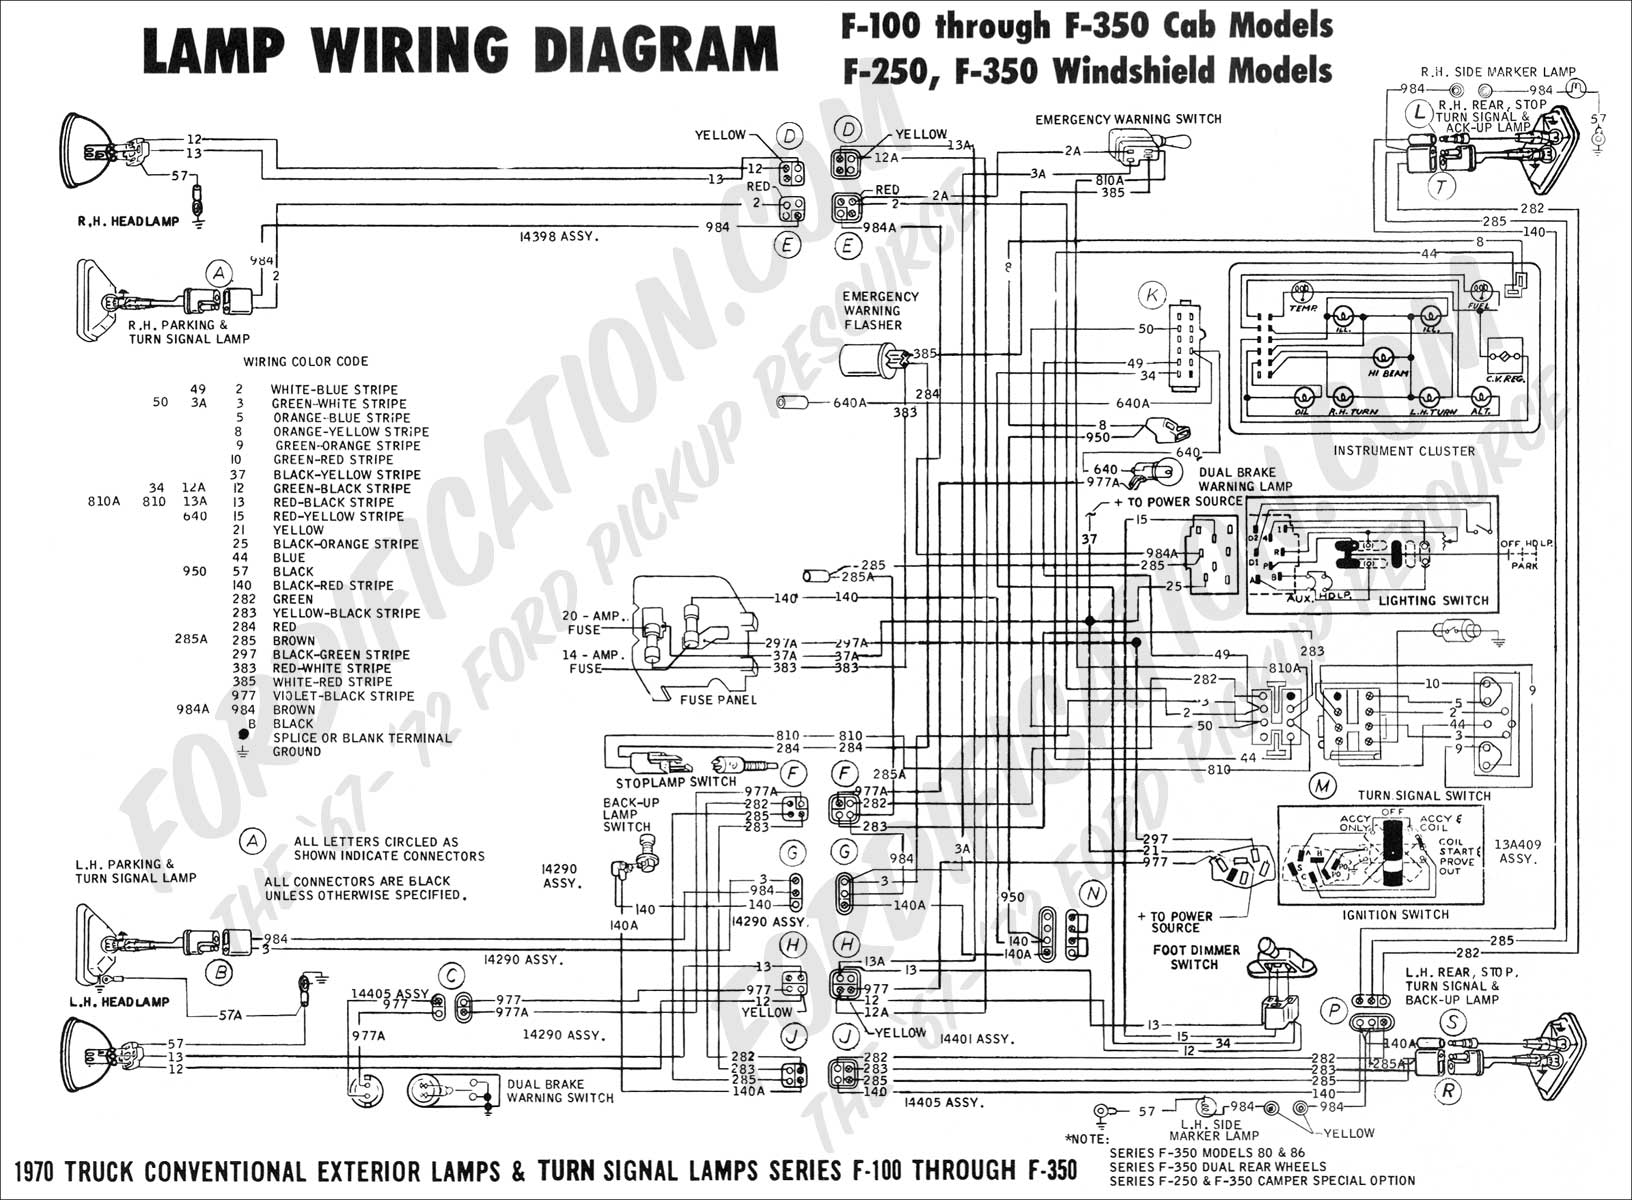 wiring diagram_70ext lights01 ford f250 wiring diagram online f250 trailer wiring diagram 2015 ford f150 trailer wiring diagram at fashall.co